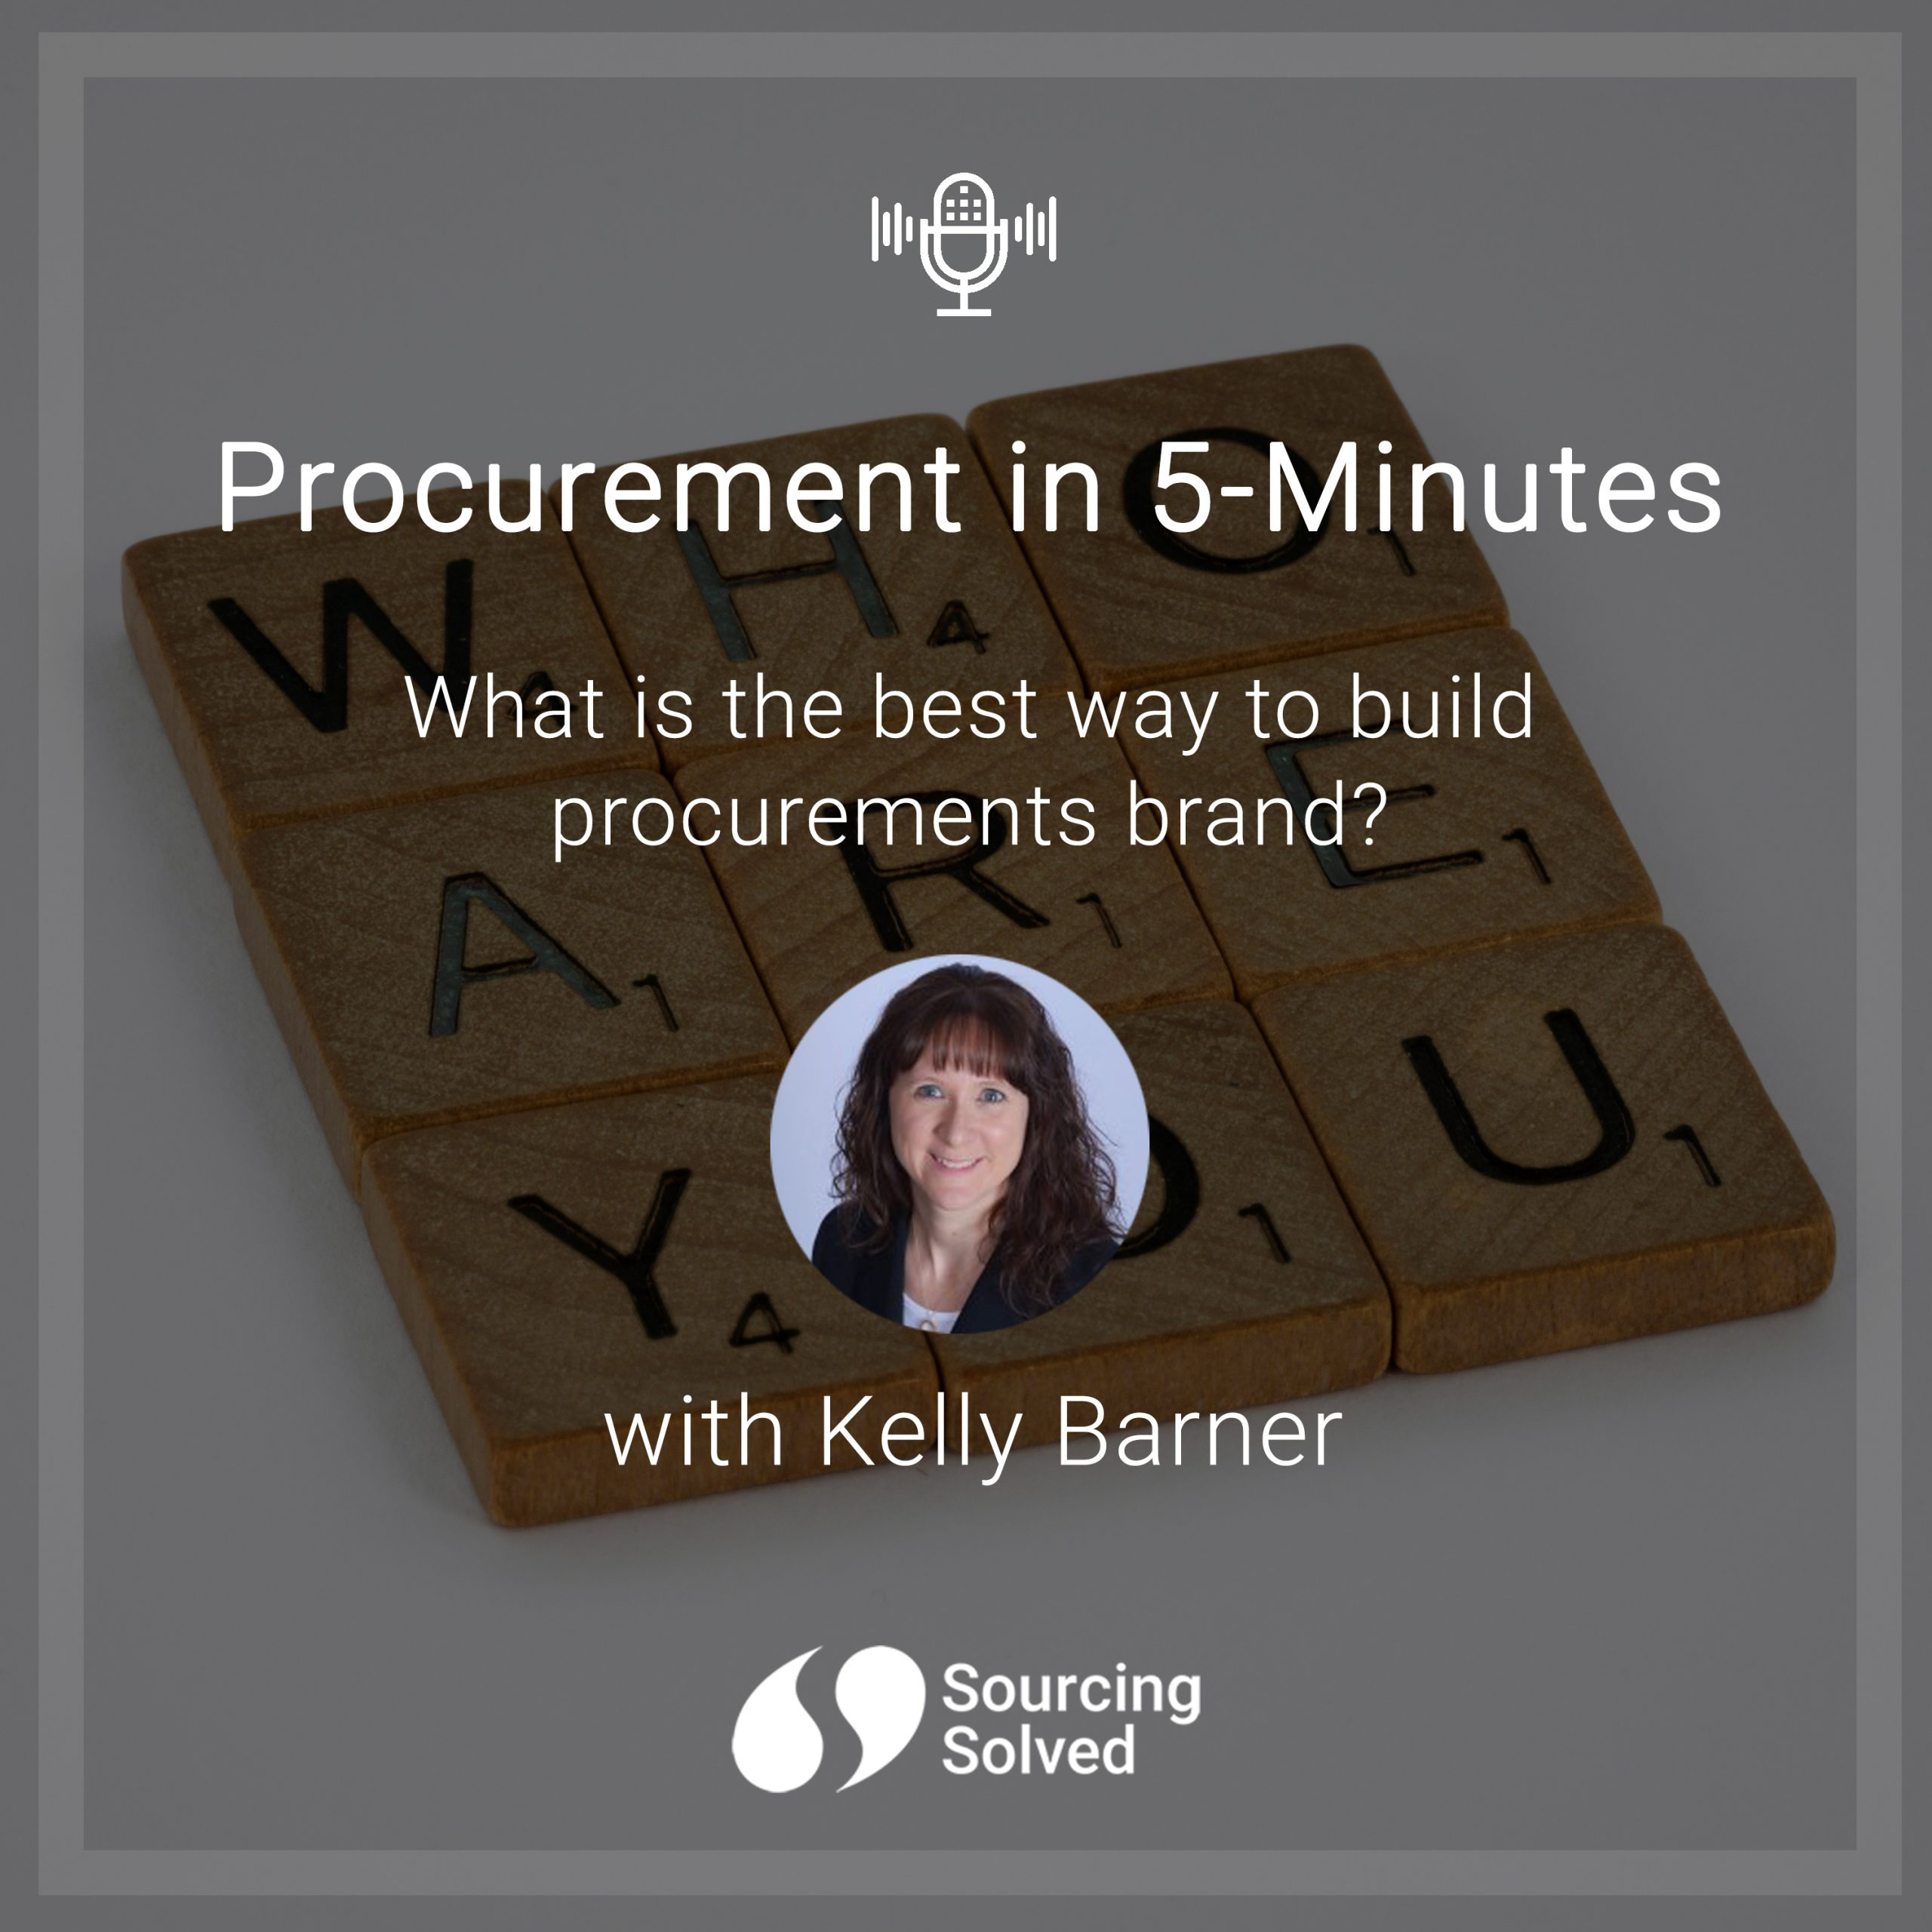 Procurement in 5-Minutes: What is the best way to build procurement's brand?